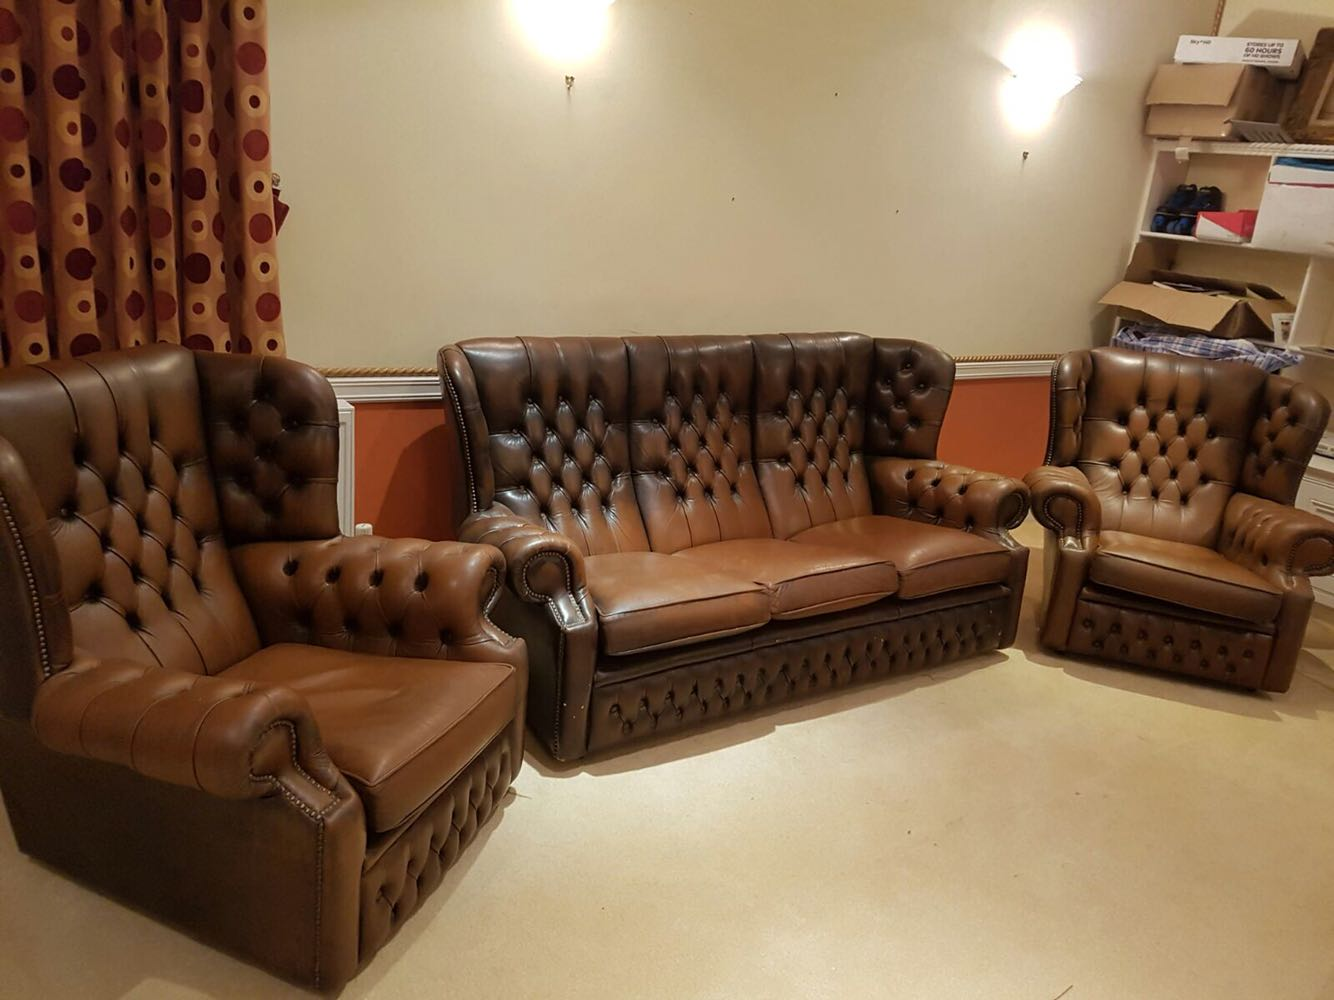 chesterfield leather sofa for sale milo baughman circular vintage sofas in uk view 99 ads